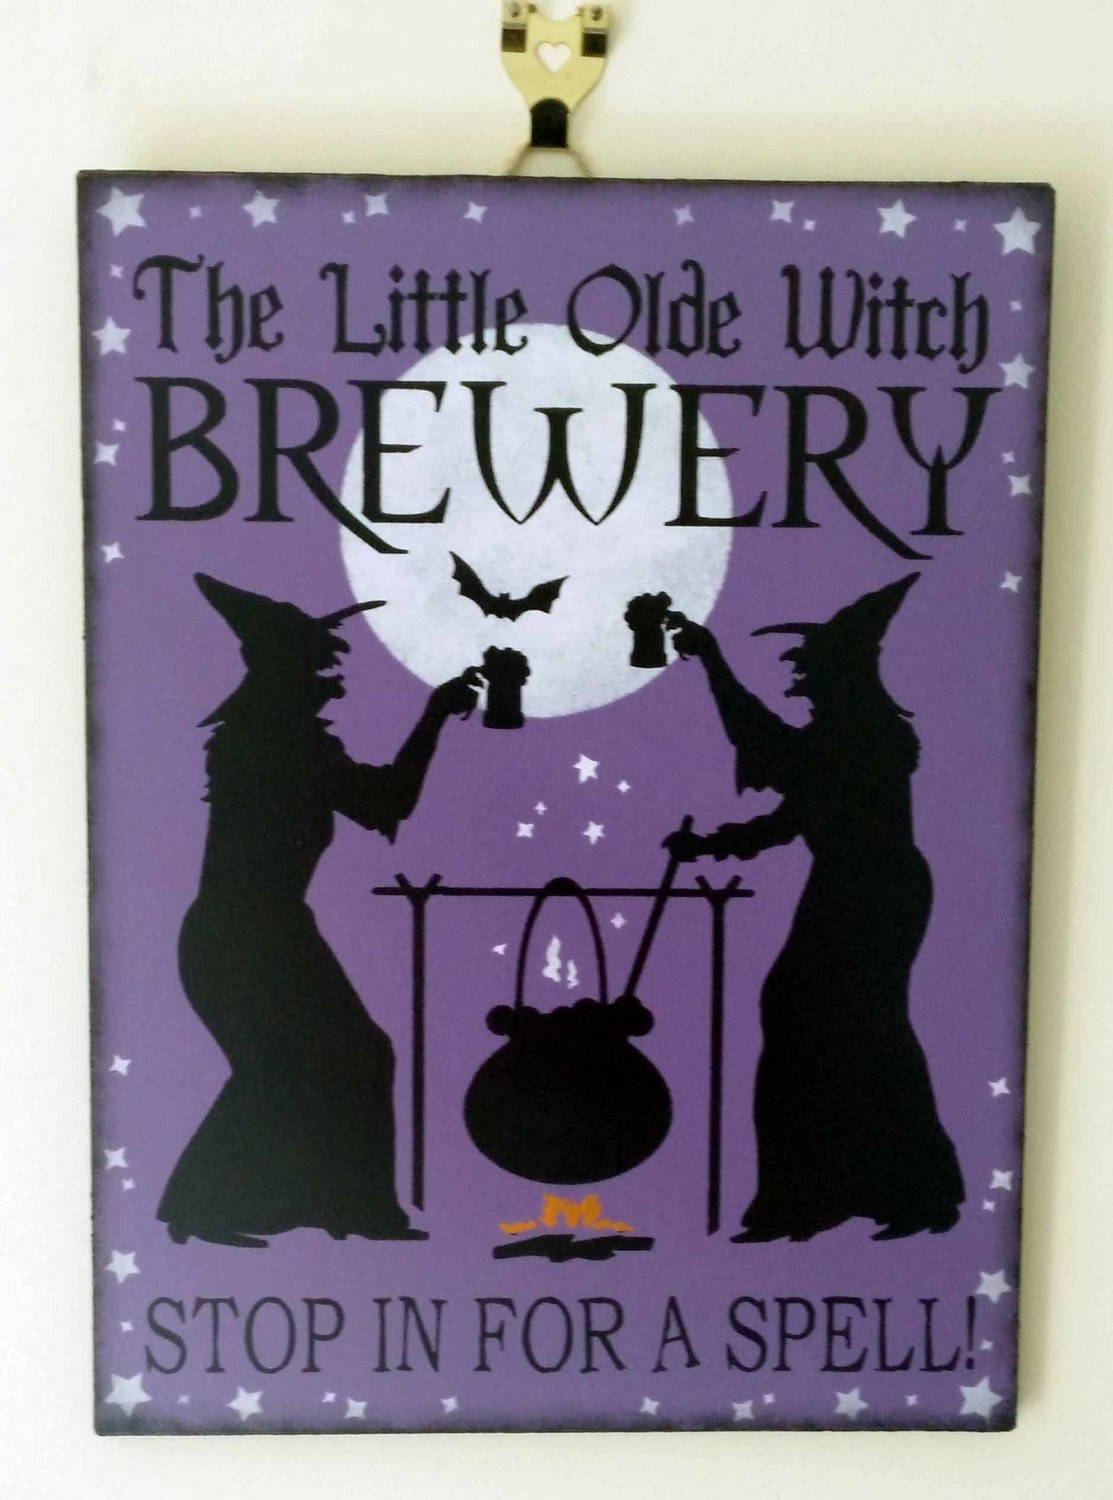 The Little Olde Witch Brewery Wooden Sign - Purple